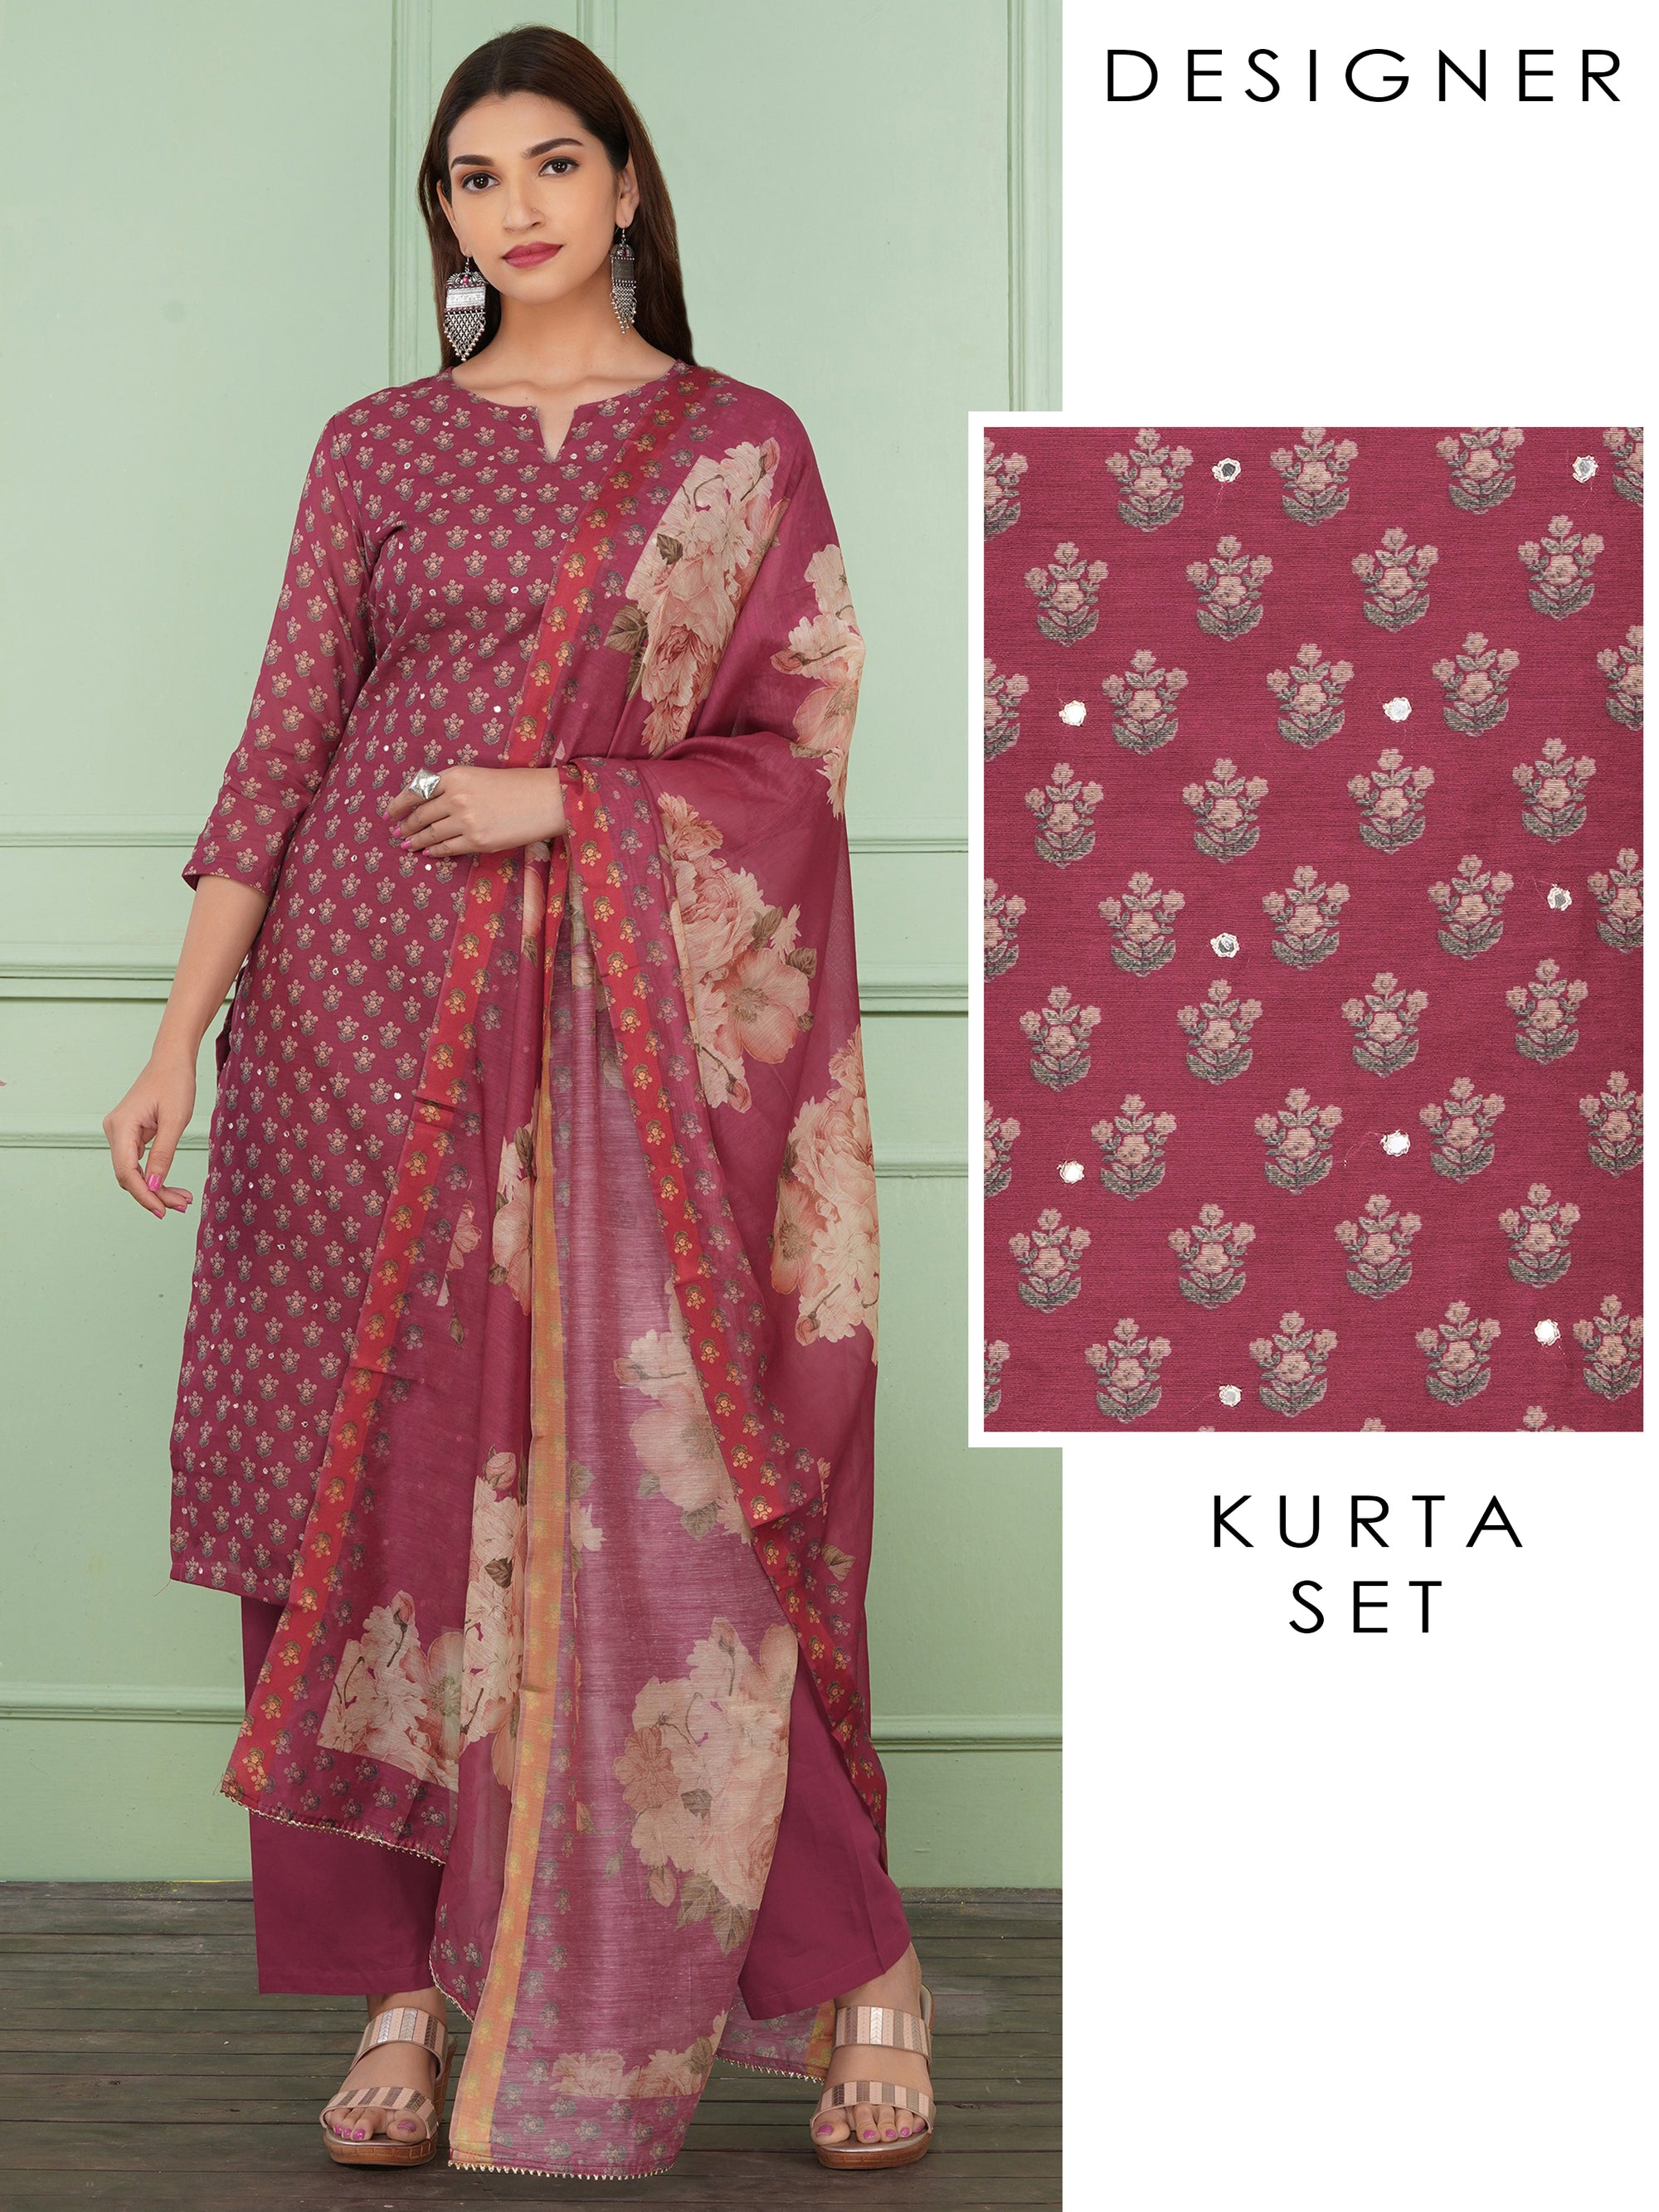 Pretty Floral Printed Kurta, Monotone Pant And Floral Dupatta Set - Pink Peacock